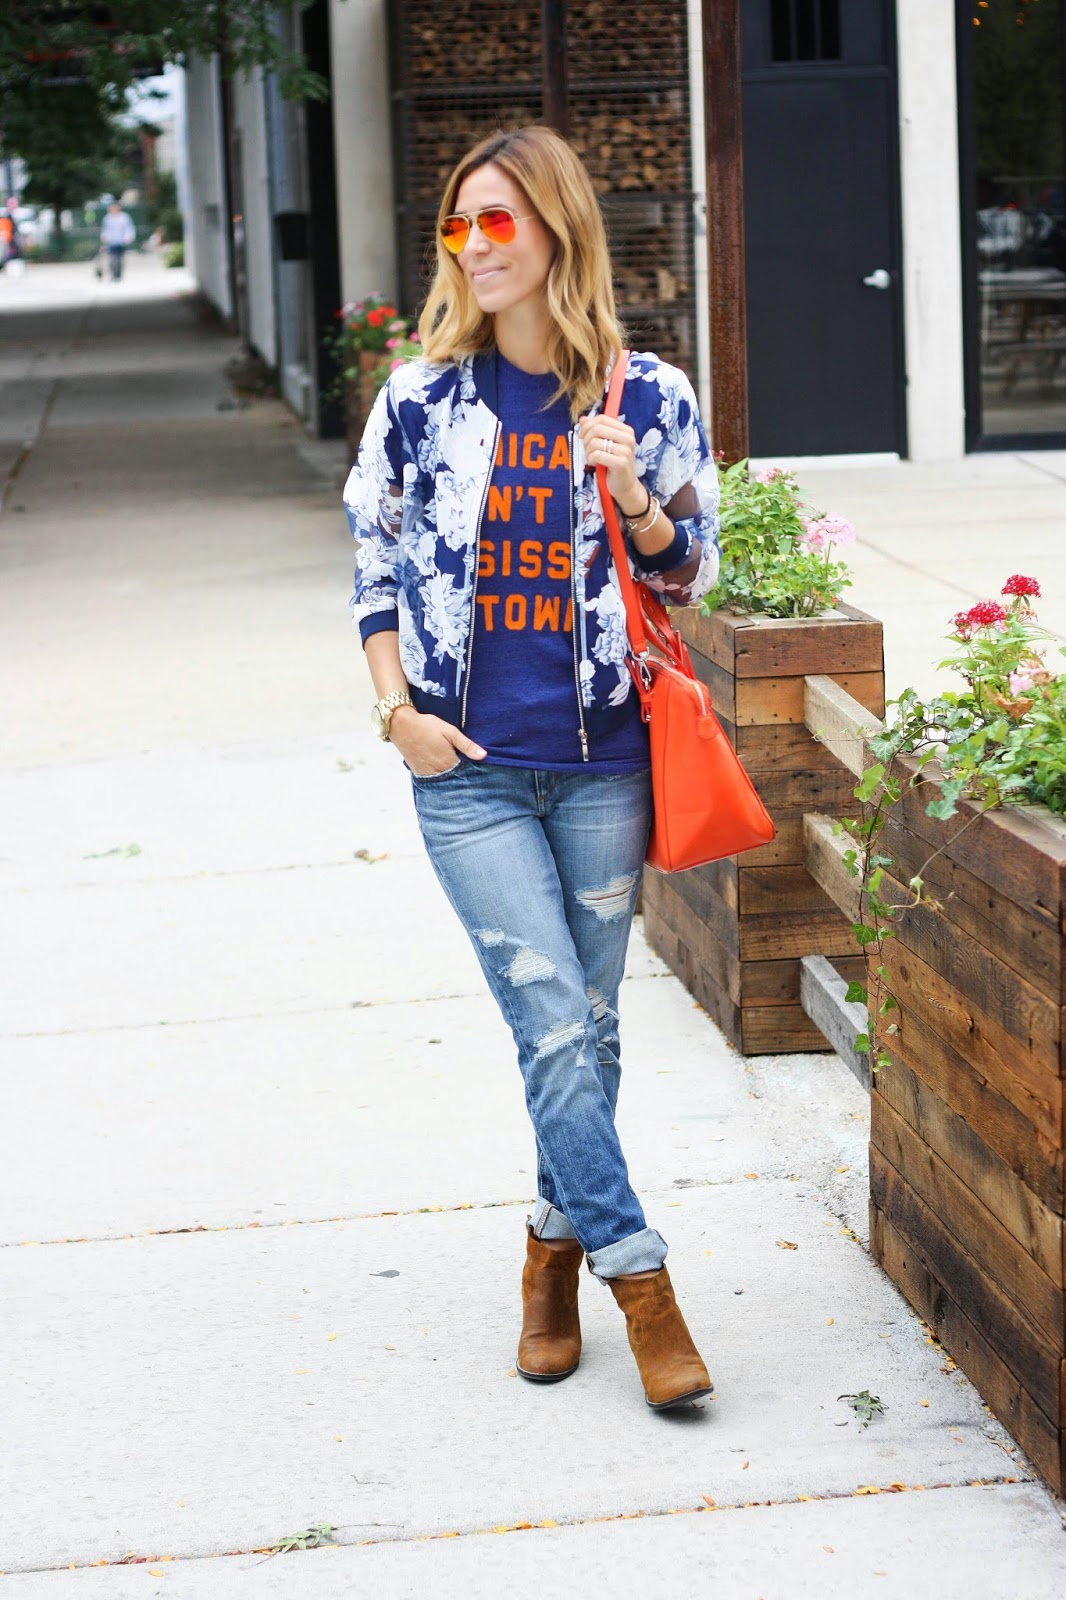 Chicago, Chicago Bears, Chicago Bears Football, Game-day, Game-day fashion, College Game Day, Flower Bomber jacket, bomber jacket, distressed denim, distressed boyfriend denim, joe's jeans distressed denim, dolce vita, dolce vita booties, mirrored sunglasses, mirrored ray-bans, red mirrored ray-bans